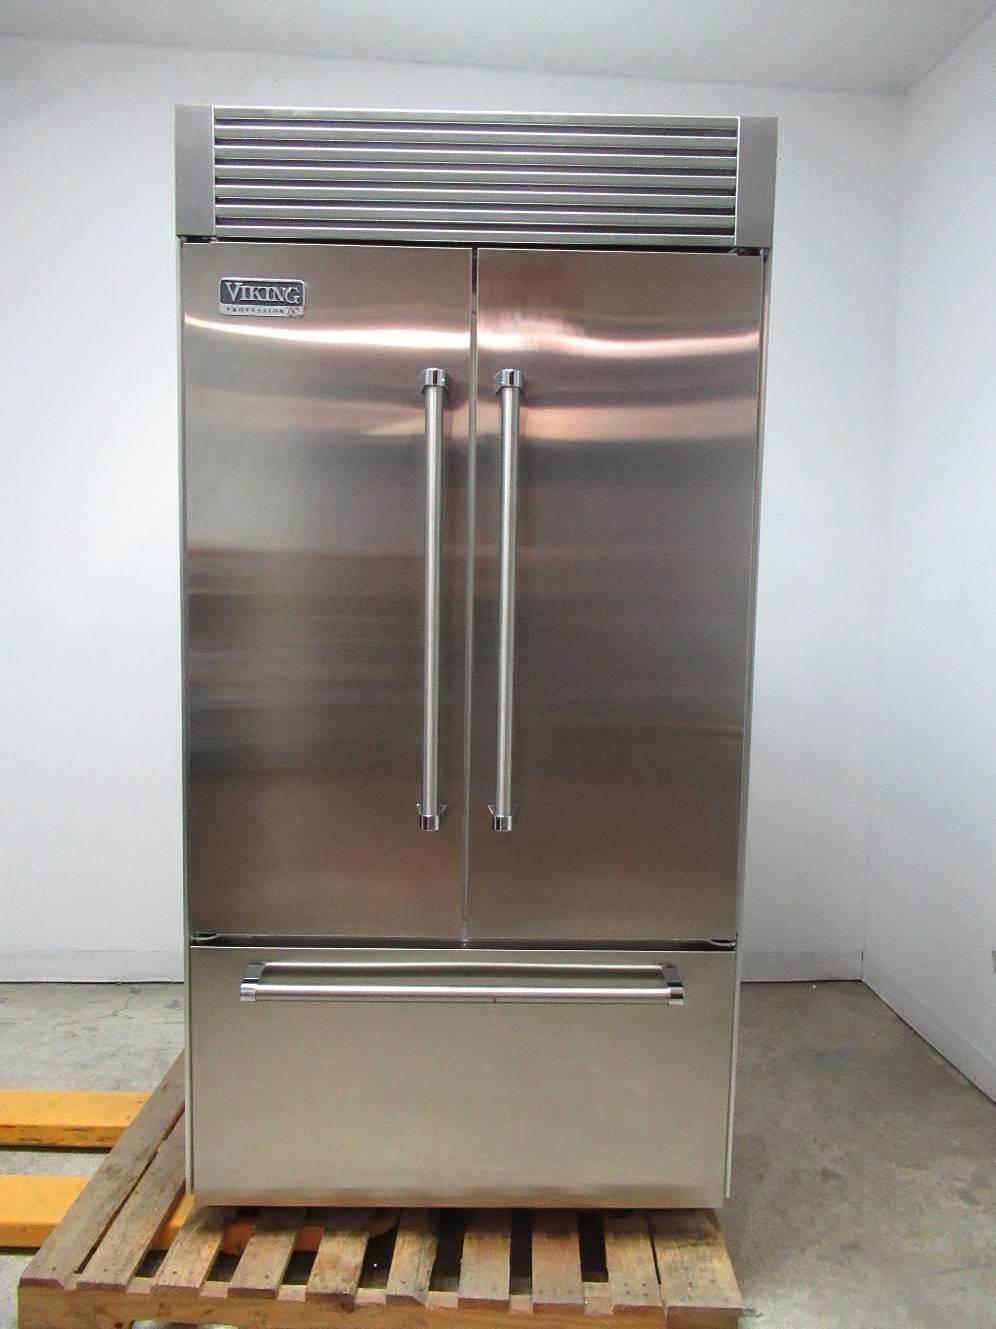 Viking professional series 42 built in french door refrigerator viking professional series 42 built in french door refrigerator vtb5420ss rubansaba